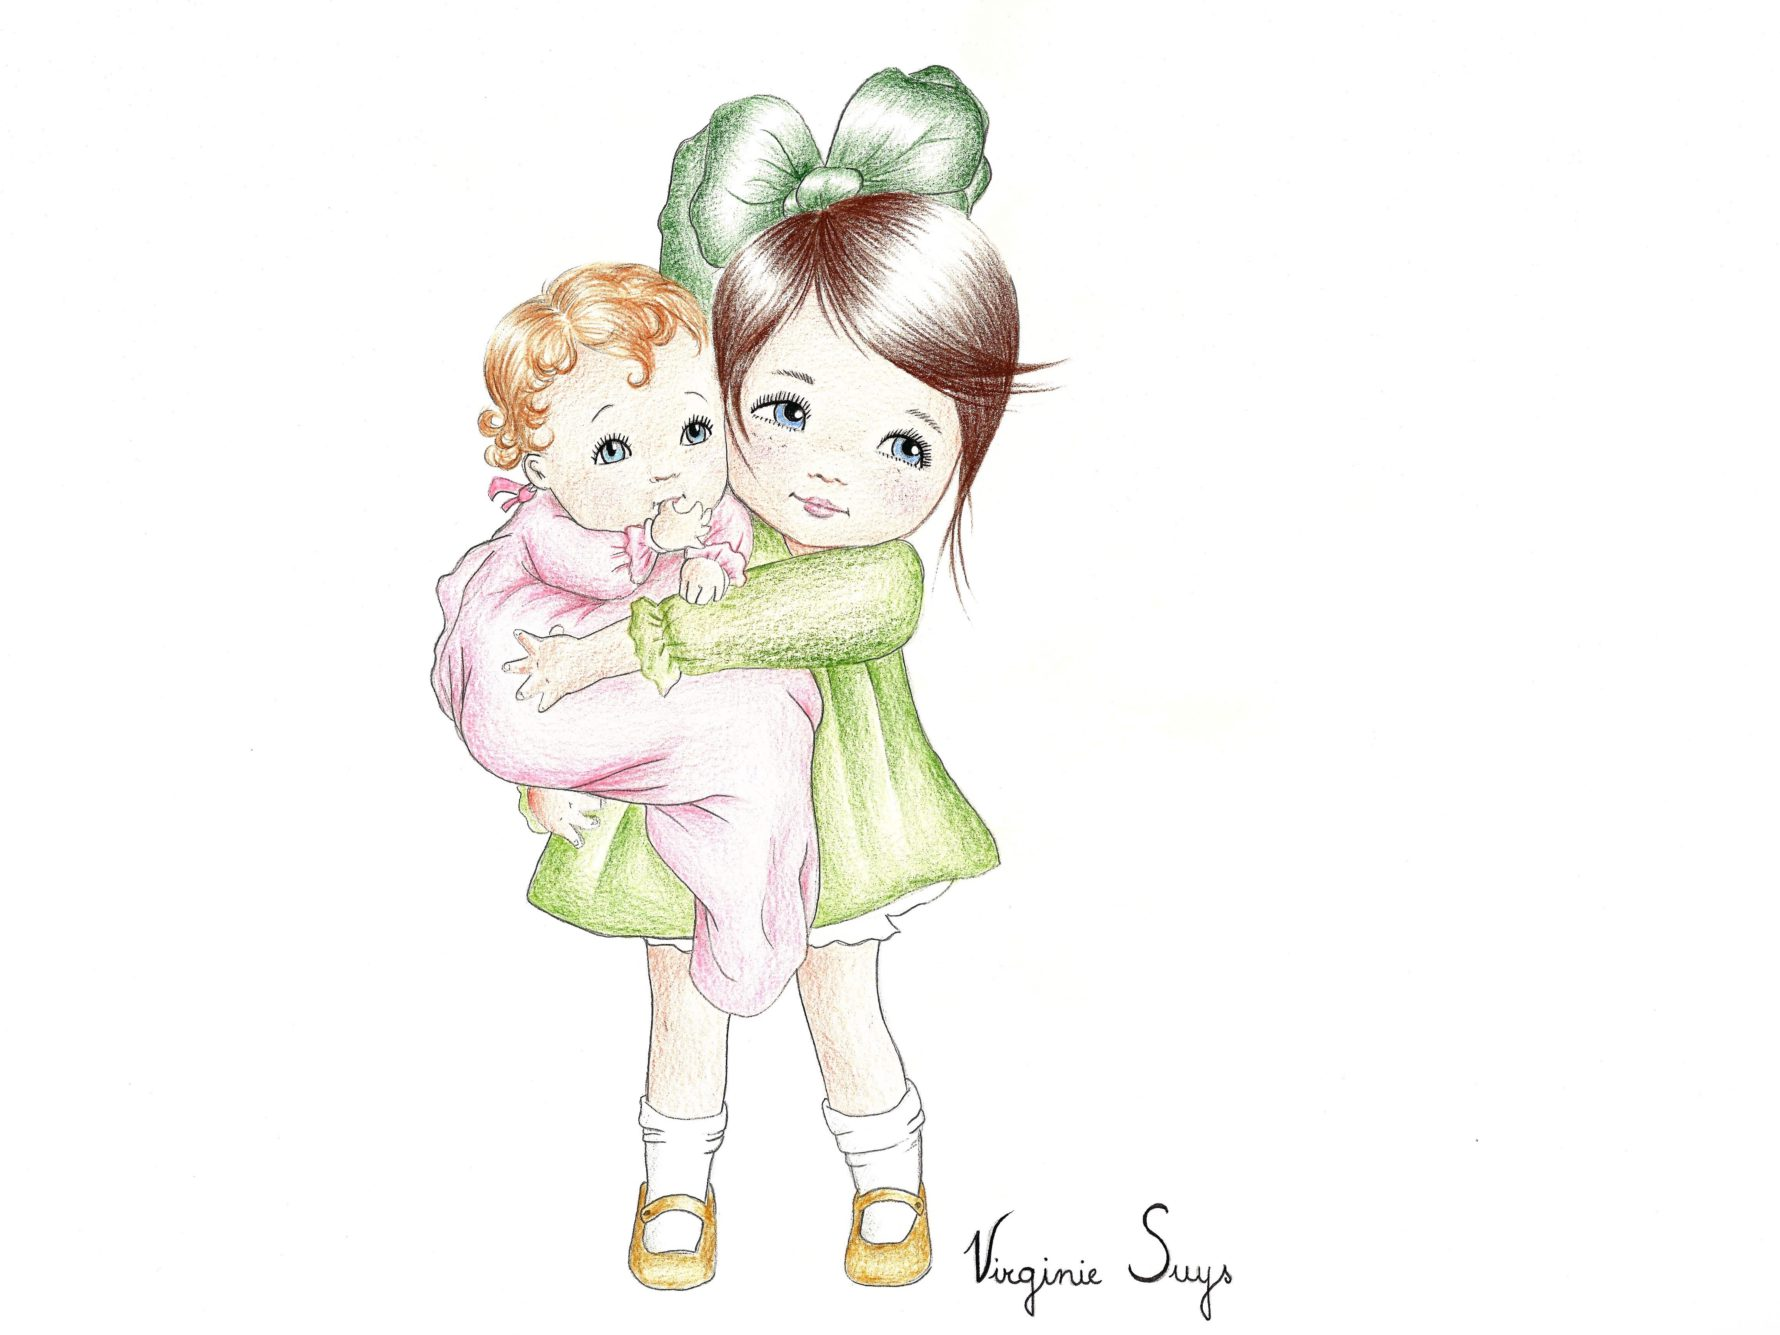 Virginie Suys Big sister with baby in pink-green illustration